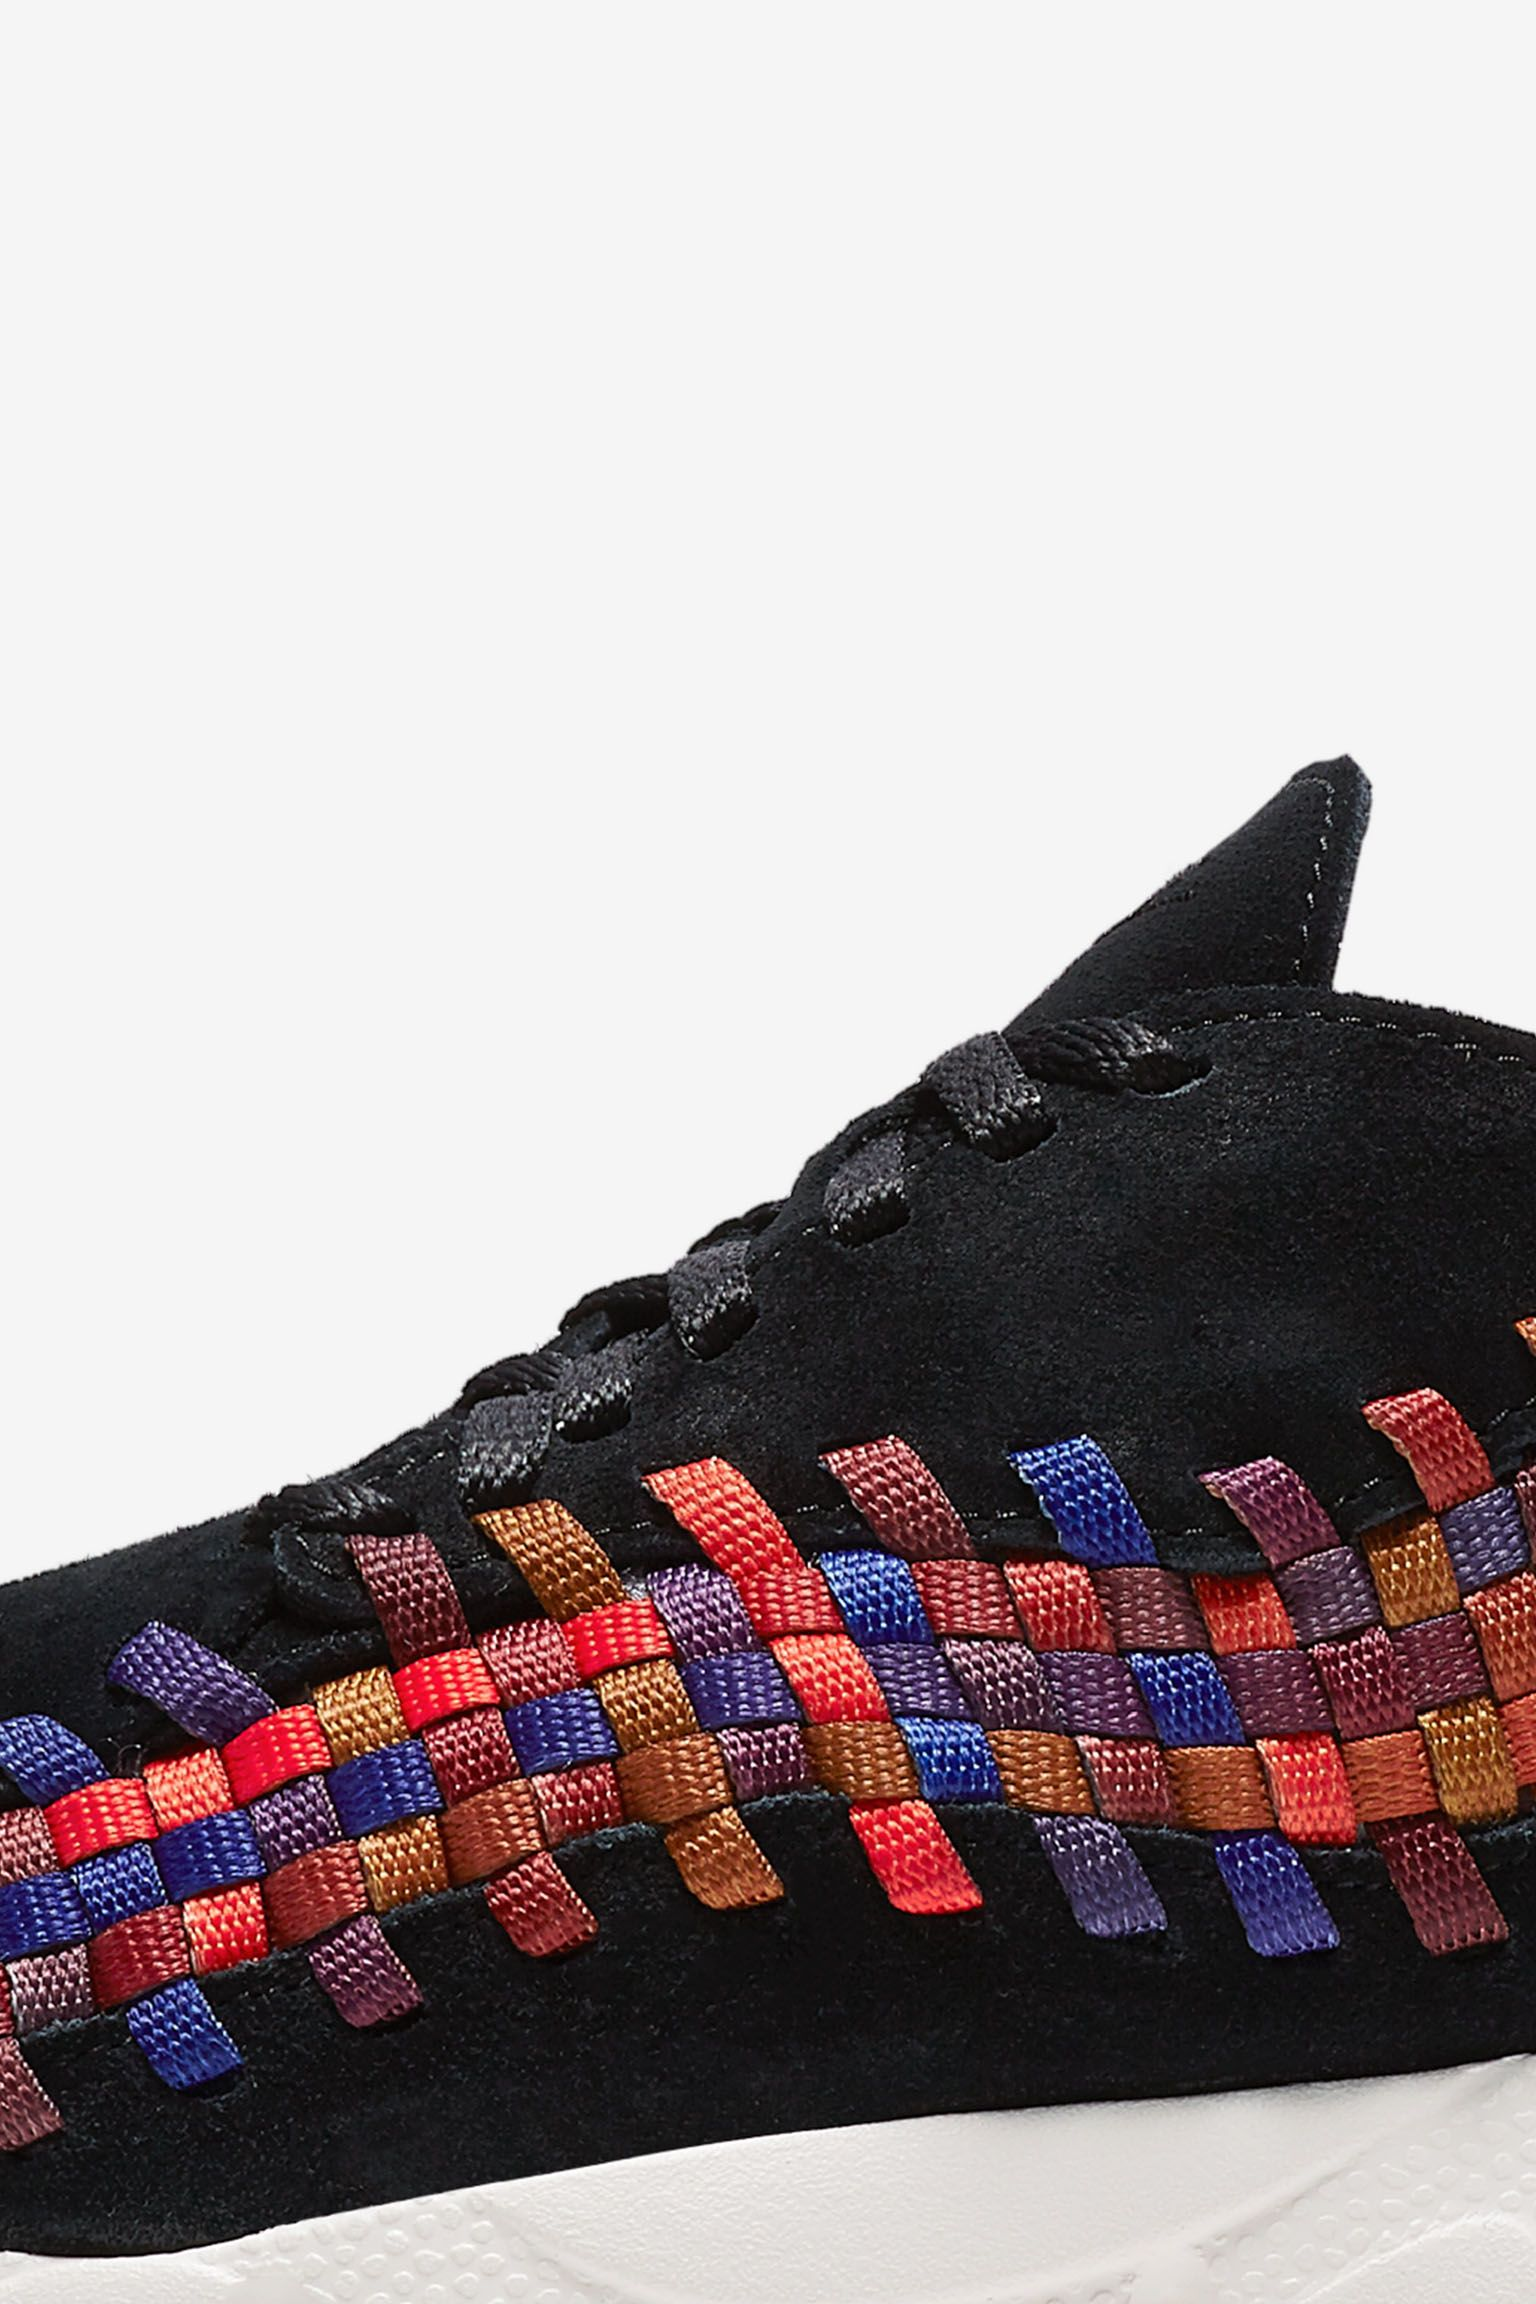 7a715 0629f nike woven rainbow incredible prices - newsbdonline.com f2e01cde37